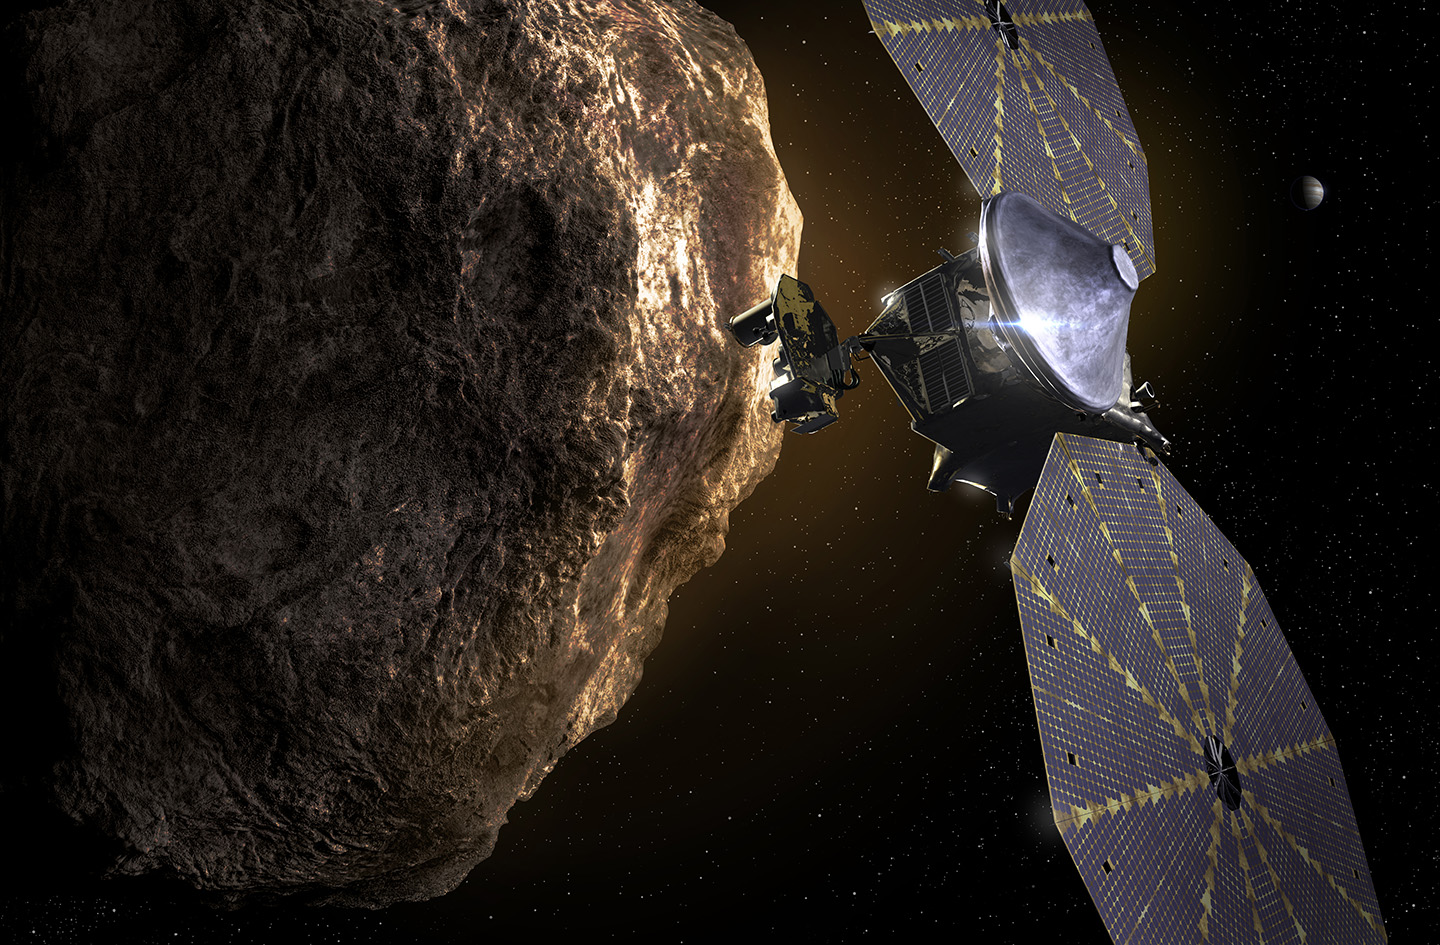 (Updated) NASA completes launch readiness review for Lucy Mission